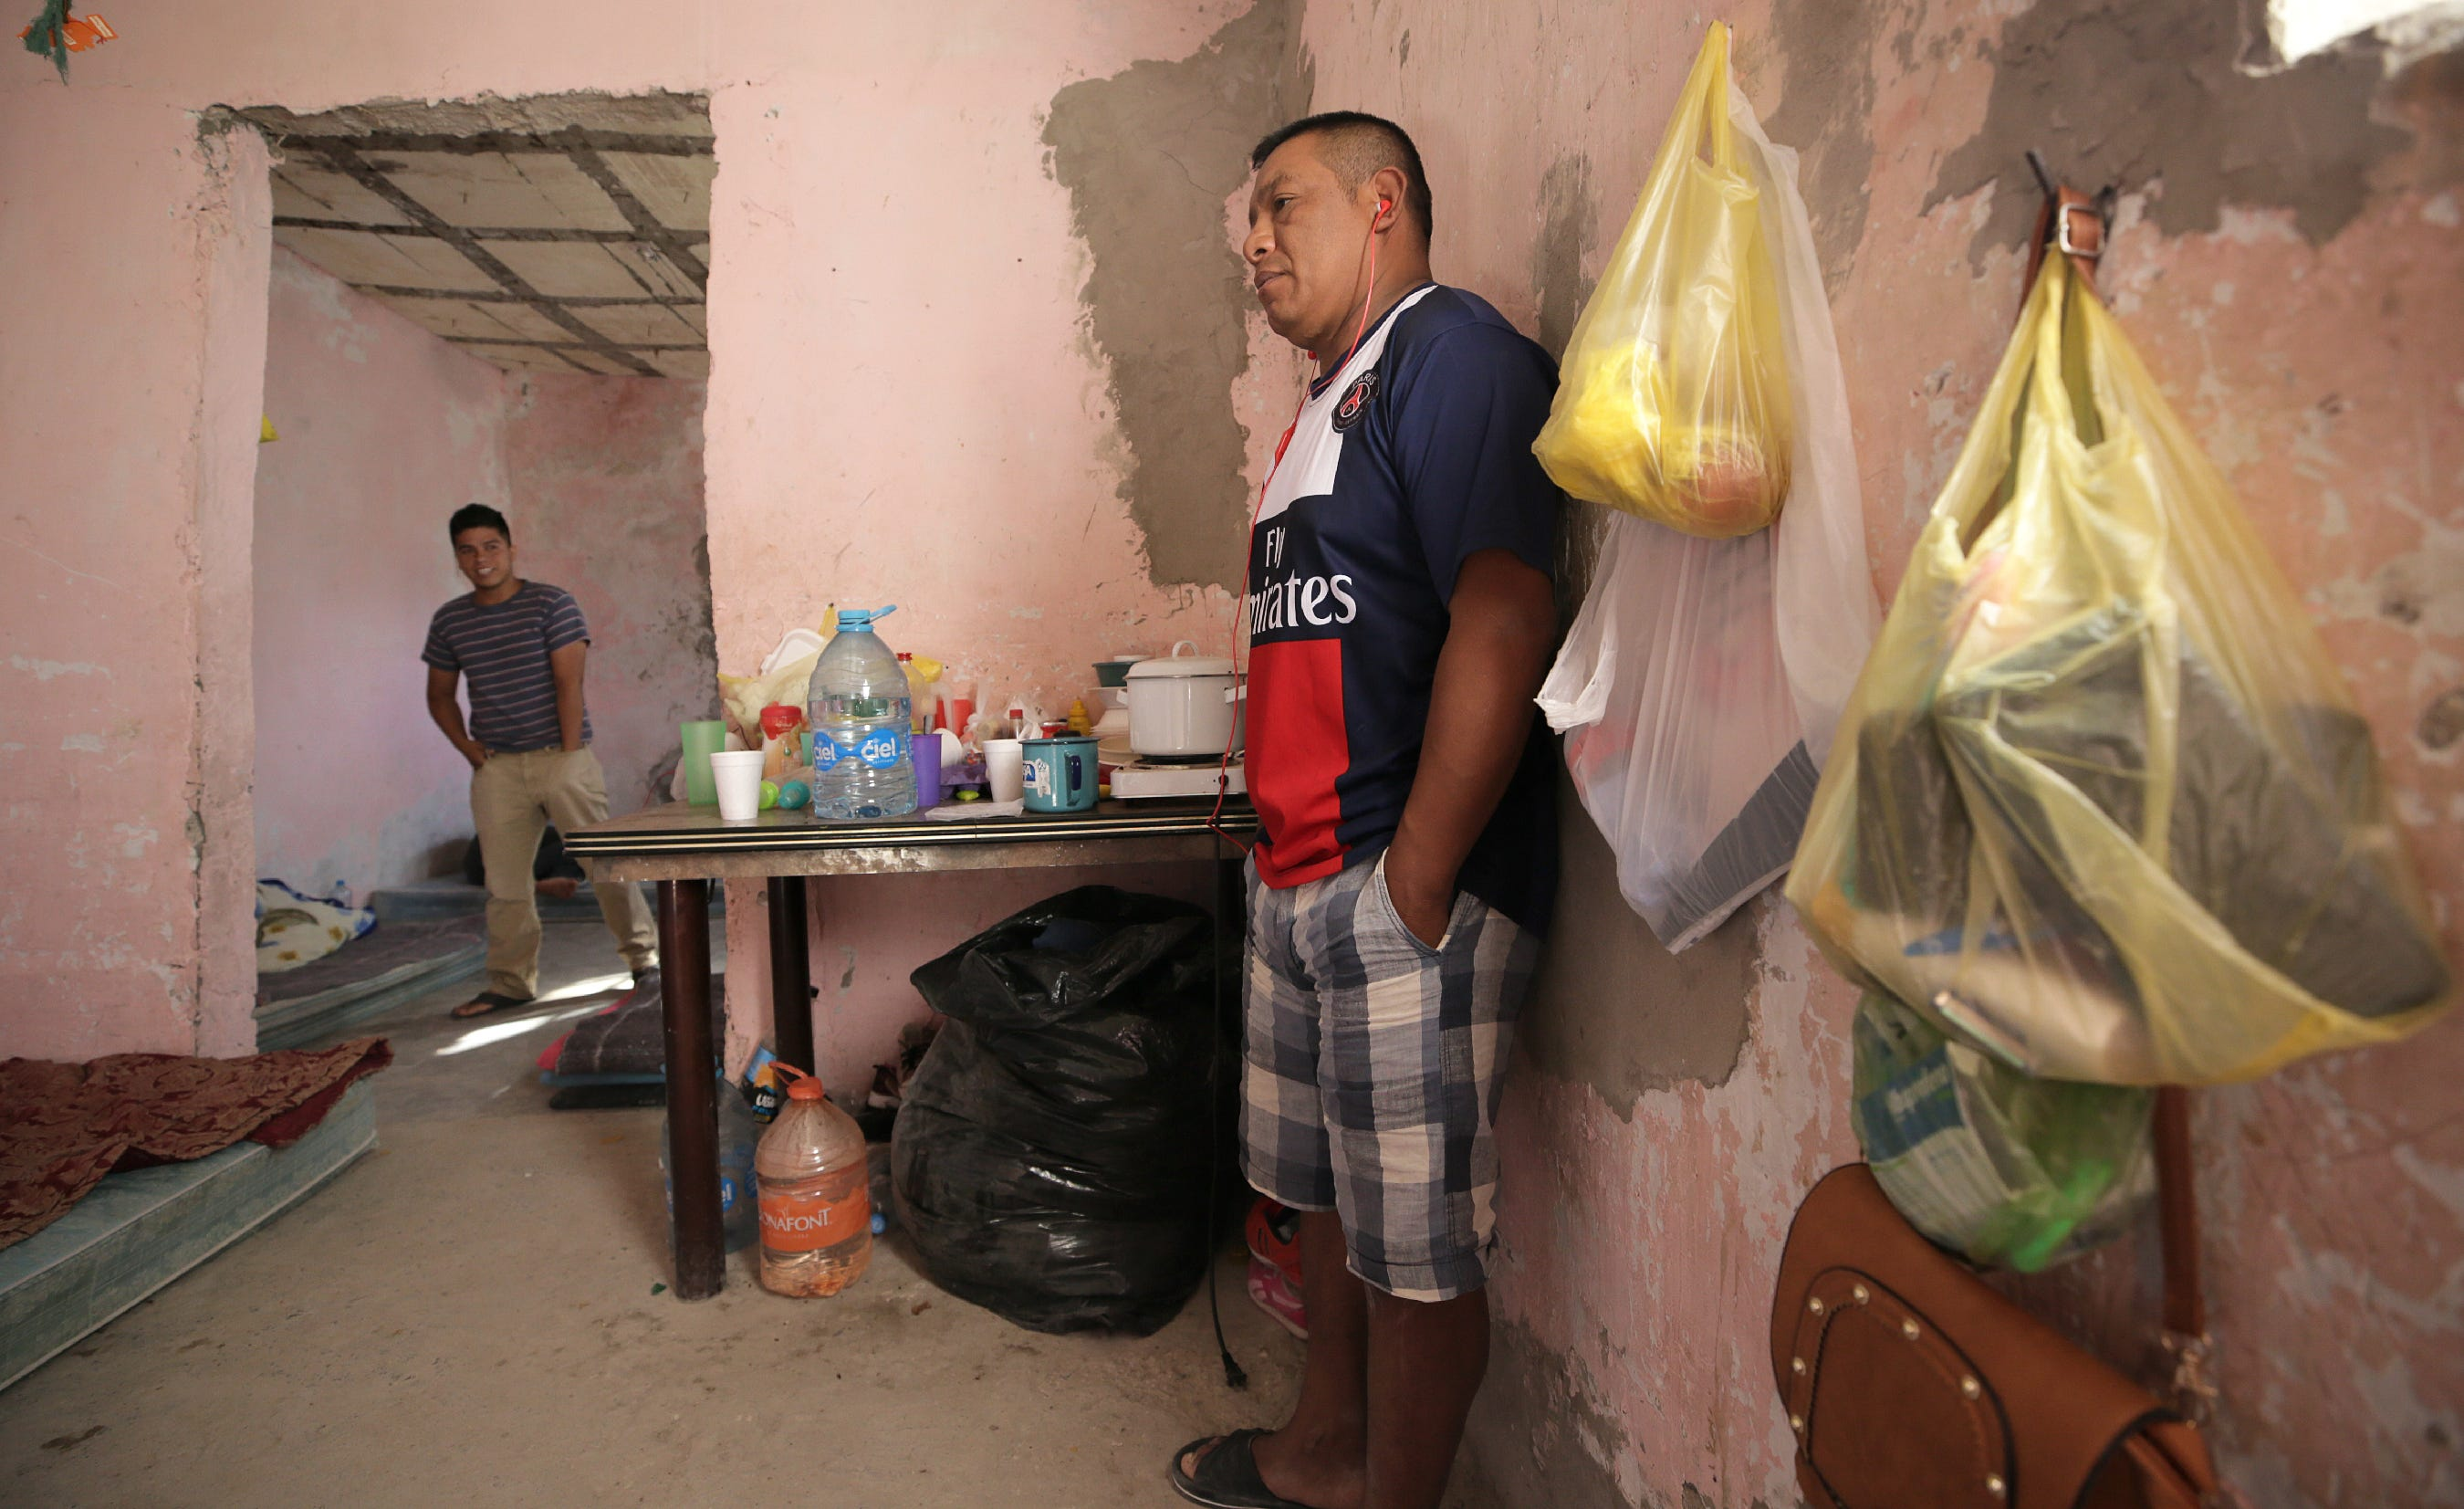 Francisco Sical, right, found shelter with his 10-year-old daughter in summer 2019 in a half-finished house in Juárez. A dozen migrants from his native Guatemala, as well as Honduras and El Salvador, waited on court hearings in the USA under the Trump administration's Migrant Protection Protocols.